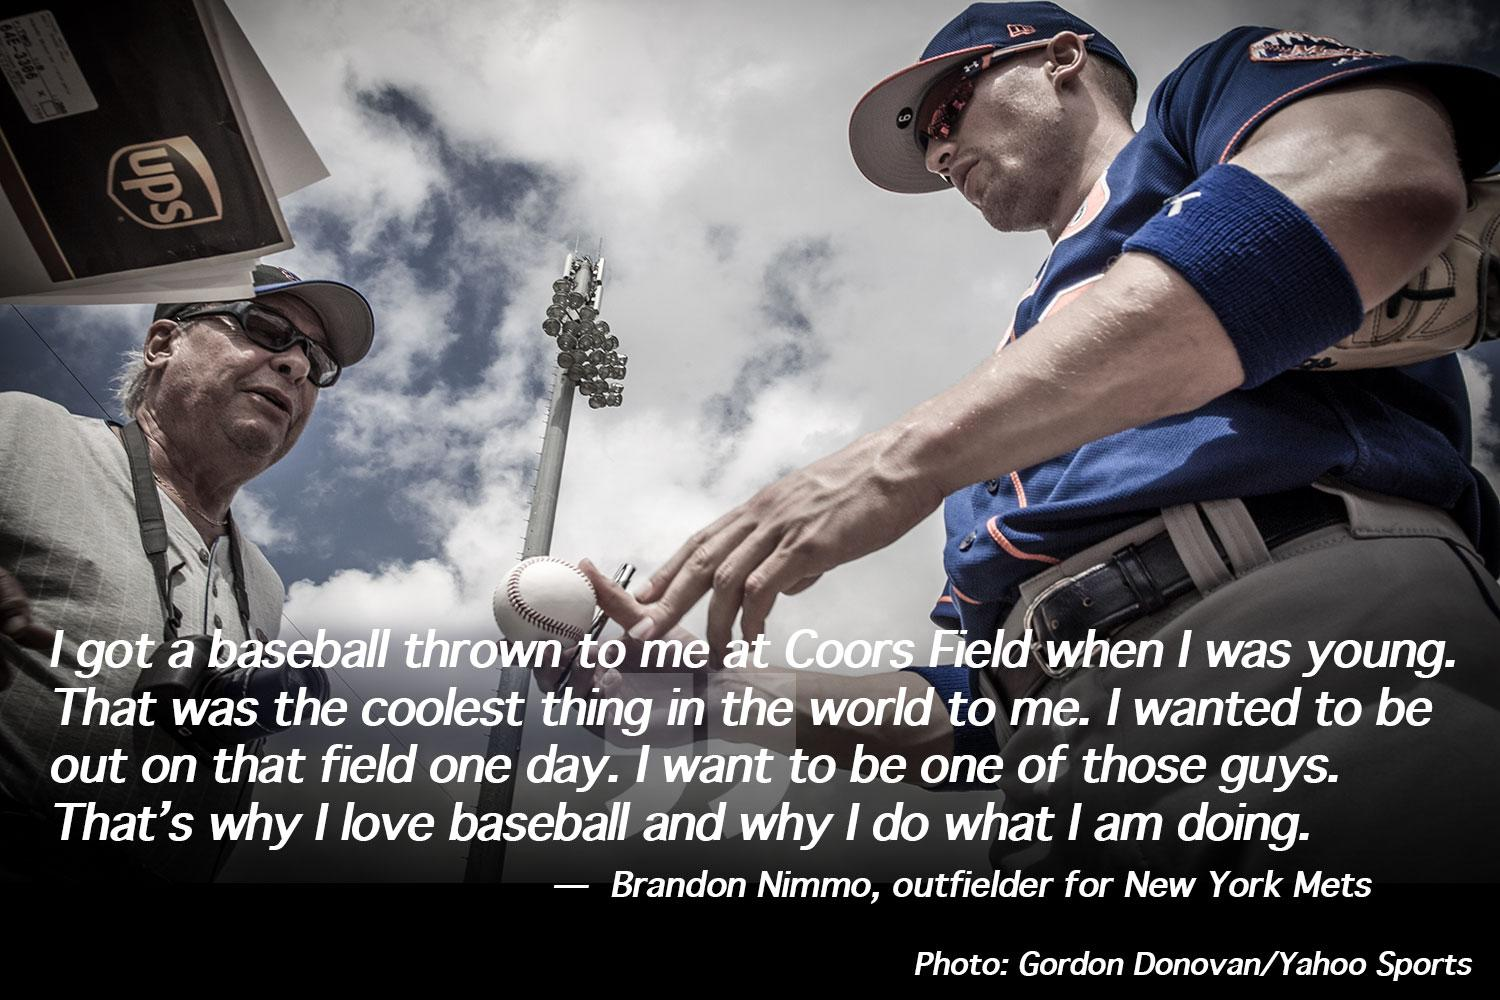 <p>New York Mets prospect Brandon Nimmo signs for fans after workouts at at the Mets spring ttraining complex in Port St. Lucie, Fl., Saturday, Feb. 25, 2017. (Gordon Donovan/Yahoo Sports) </p>